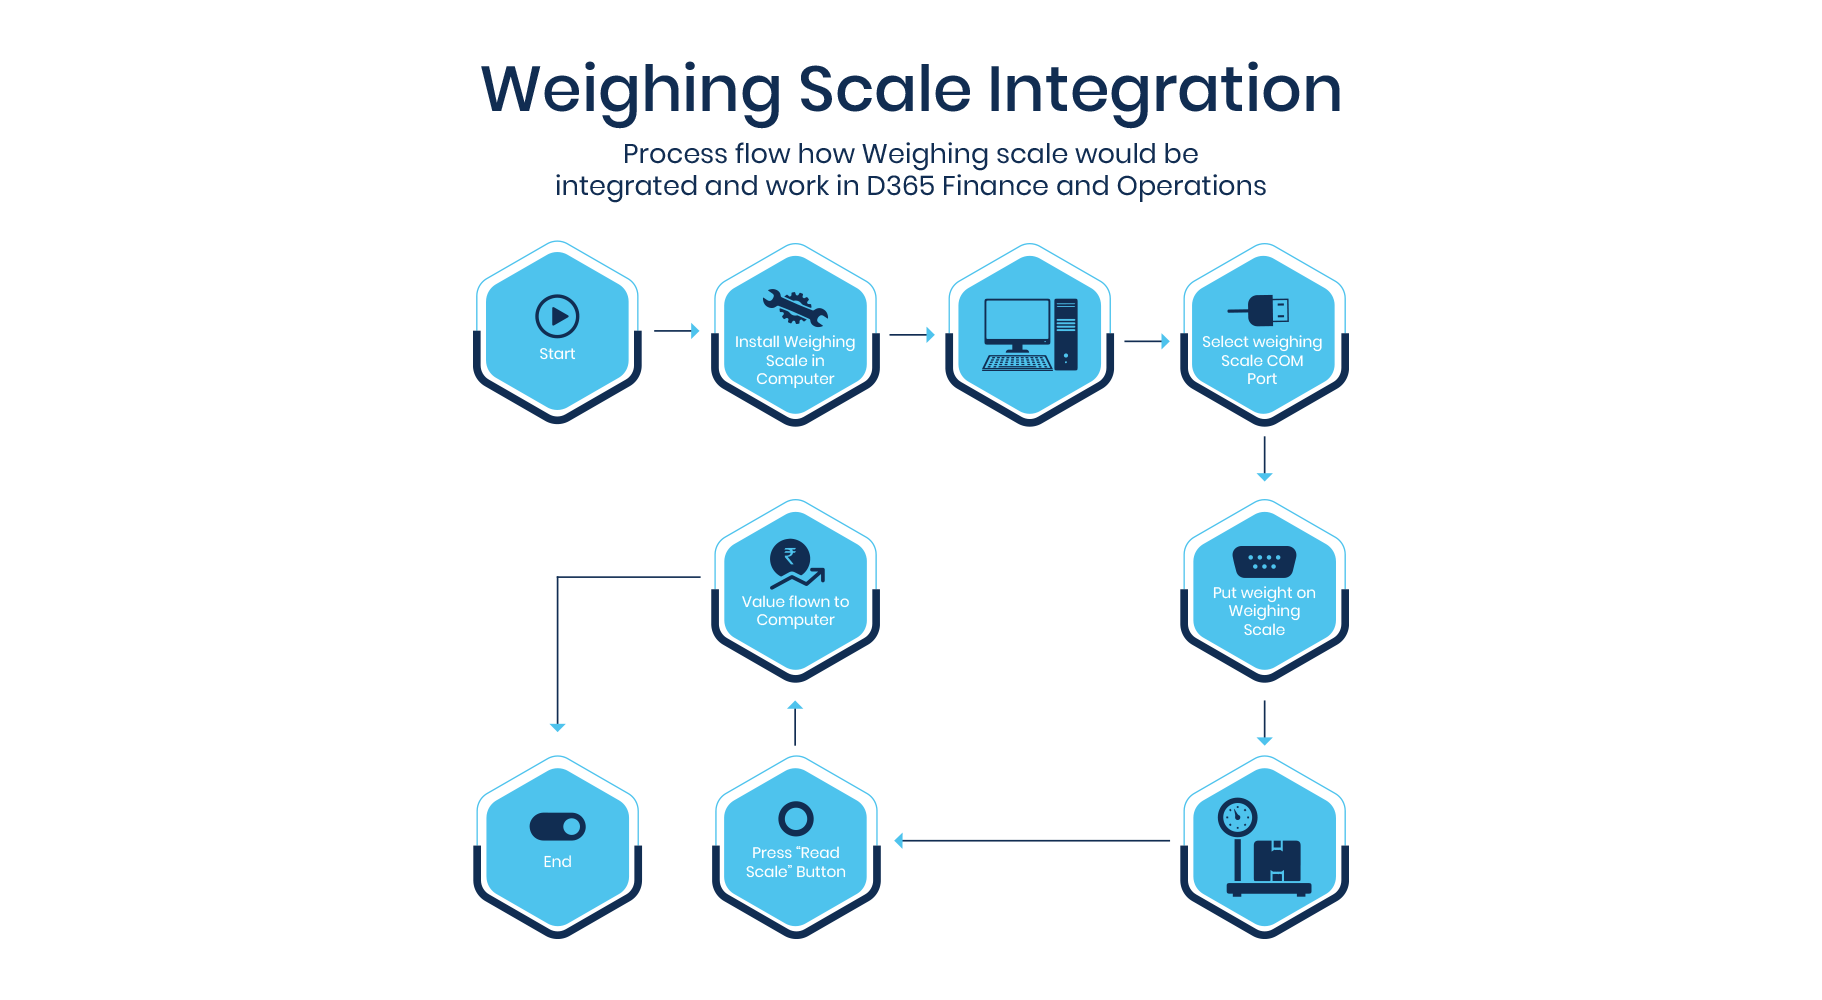 weigh-scale-integration